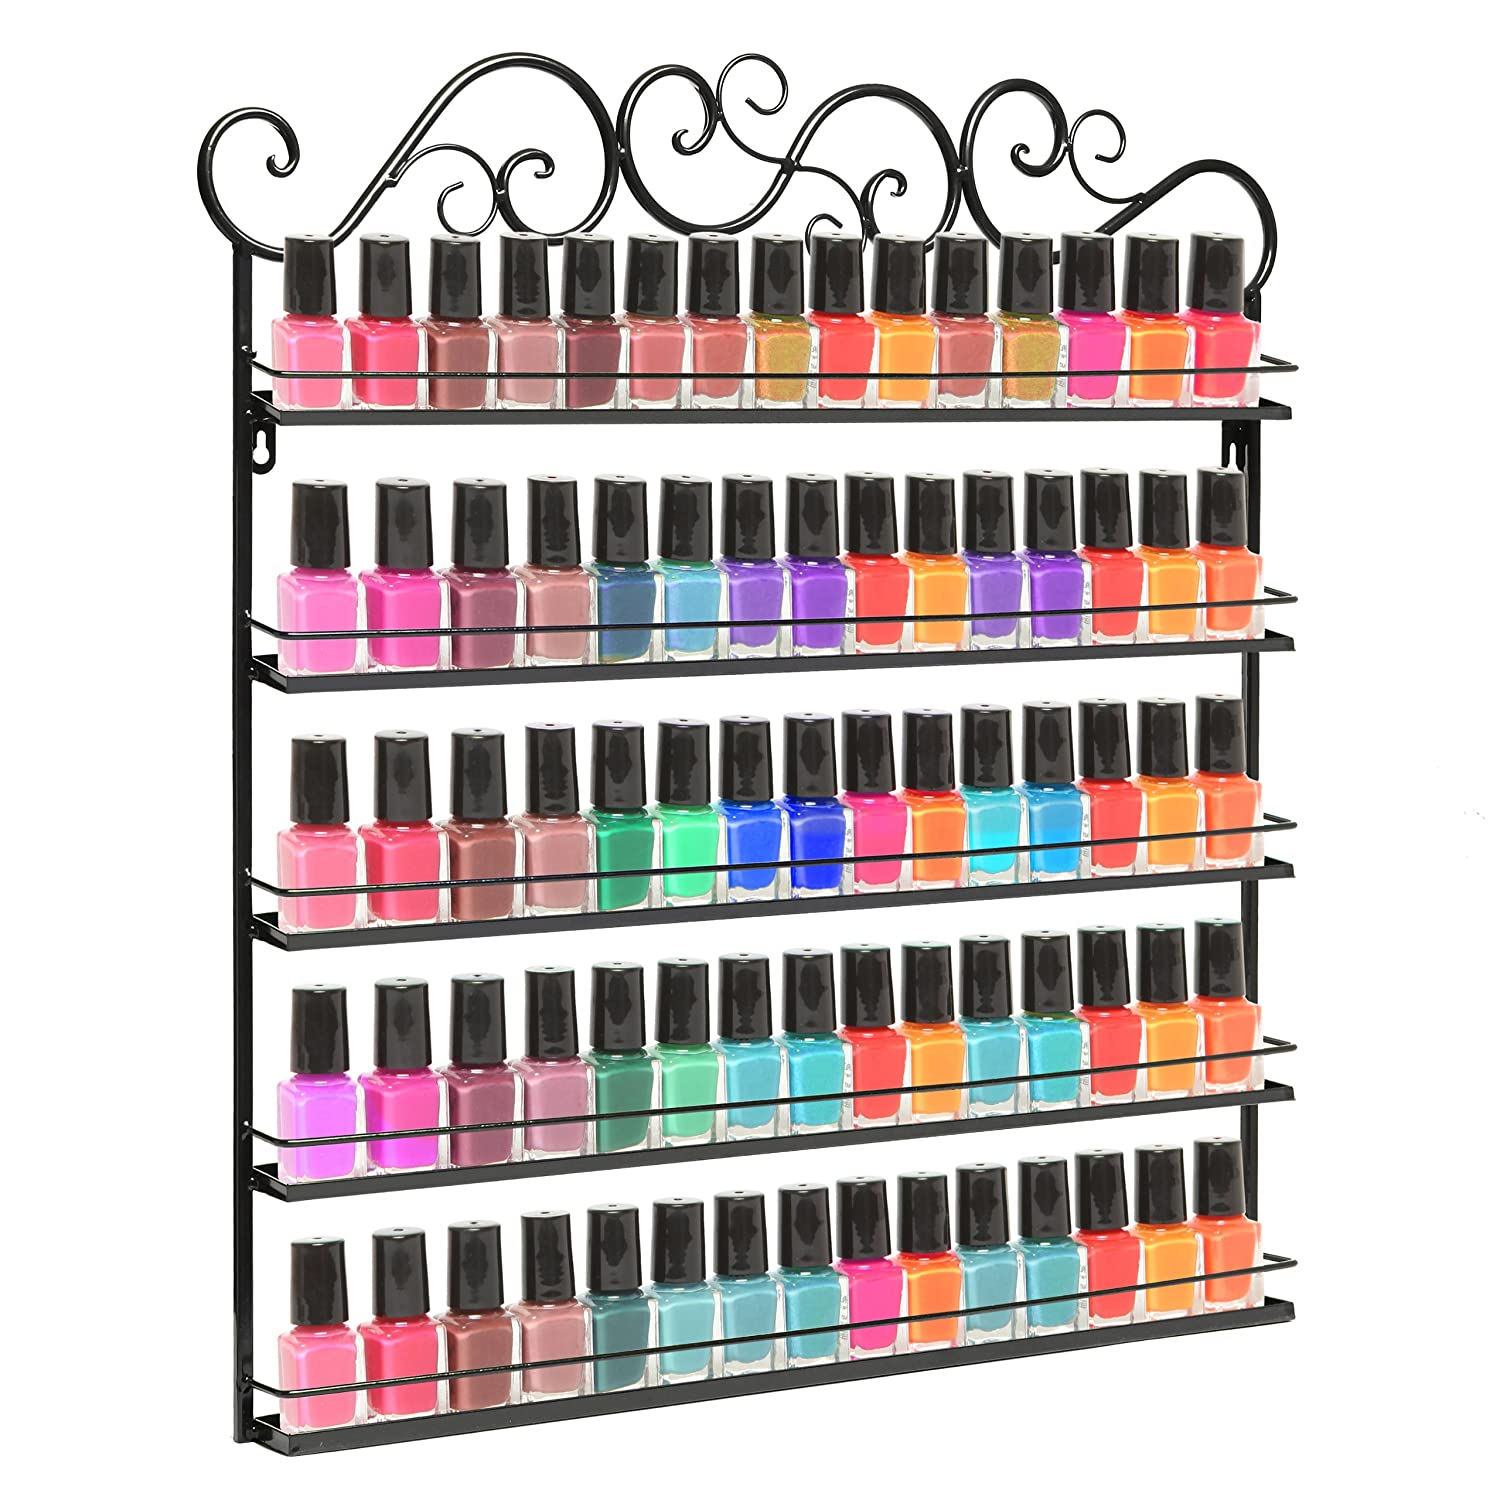 Professional Nail Polish Rack Holder Organizer Wall Mount